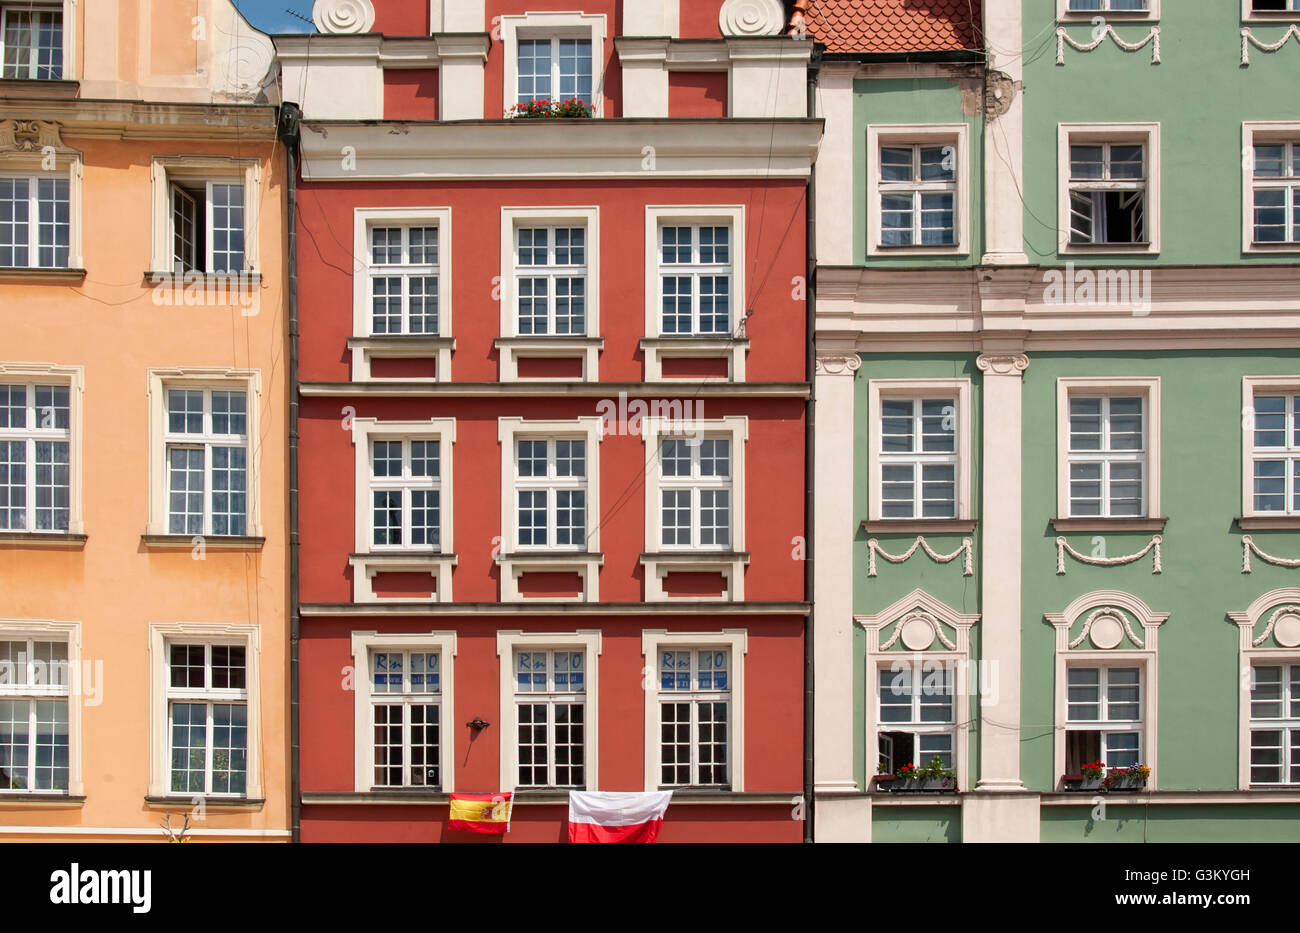 Colourful facades of town houses on Rynek, market square, in Wroclaw, Lower Silesia, Poland, Europe Stock Photo